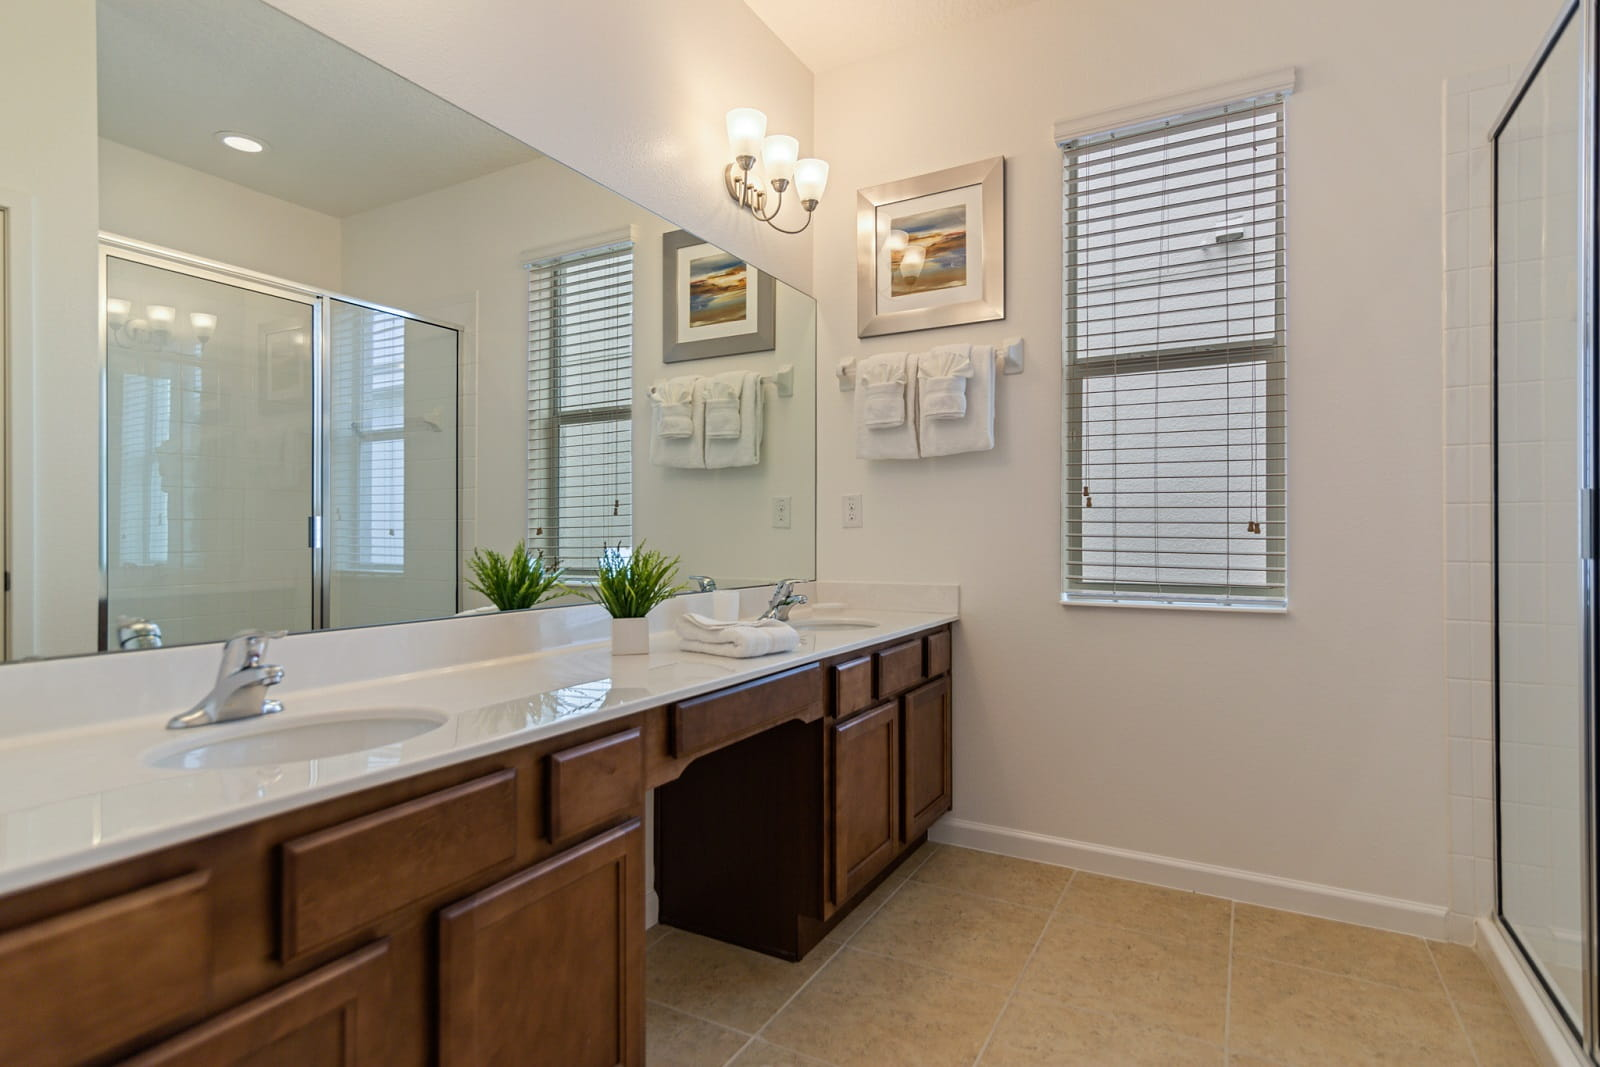 Real Estate Photography in Kissimmee - FL - USA - Bathroom View